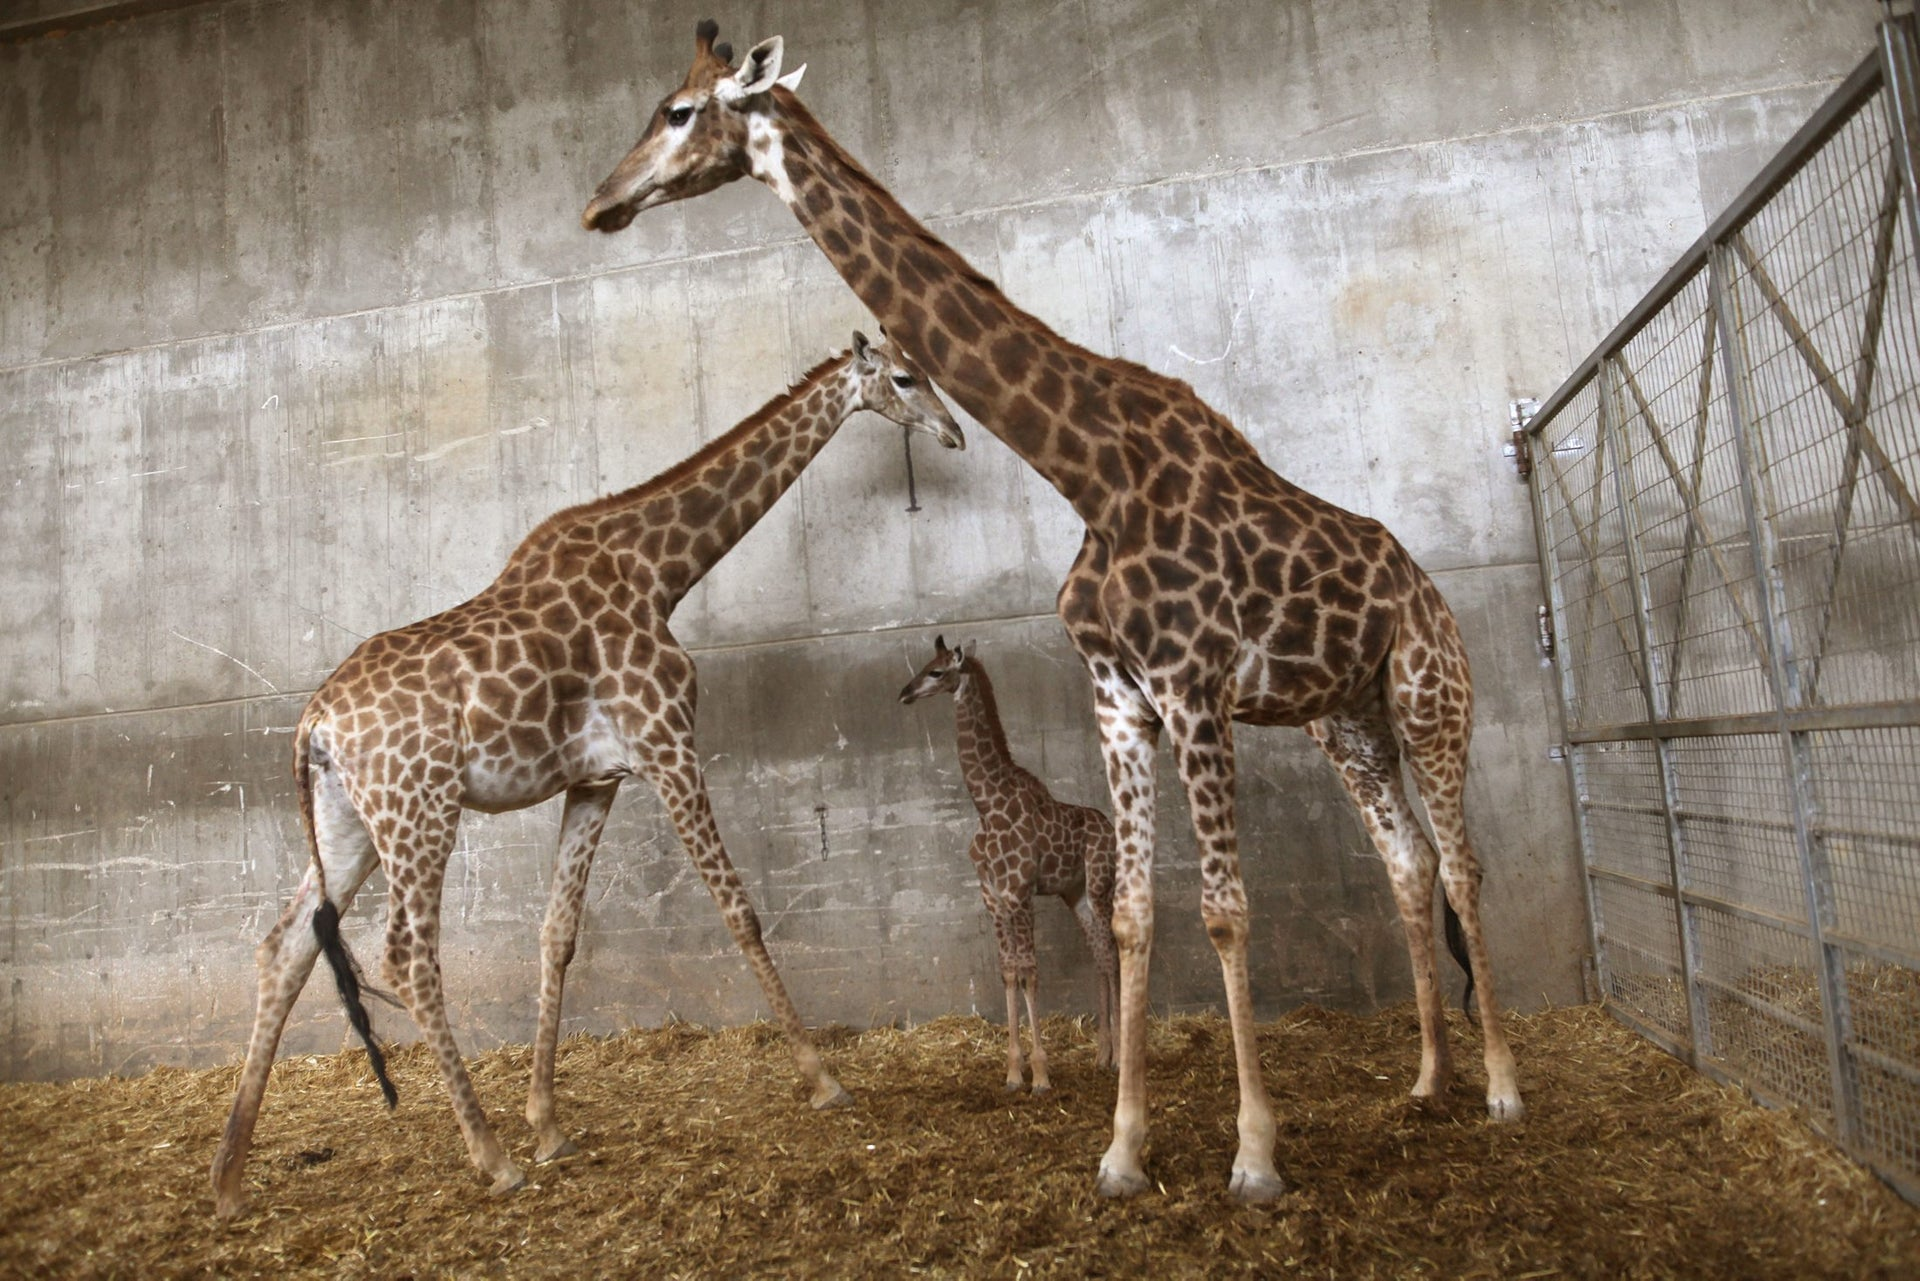 Adis, two weeks old baby giraffe with his mother and his grandmother, in Biblical Zoo in Jerusalem, April 10, 2016.